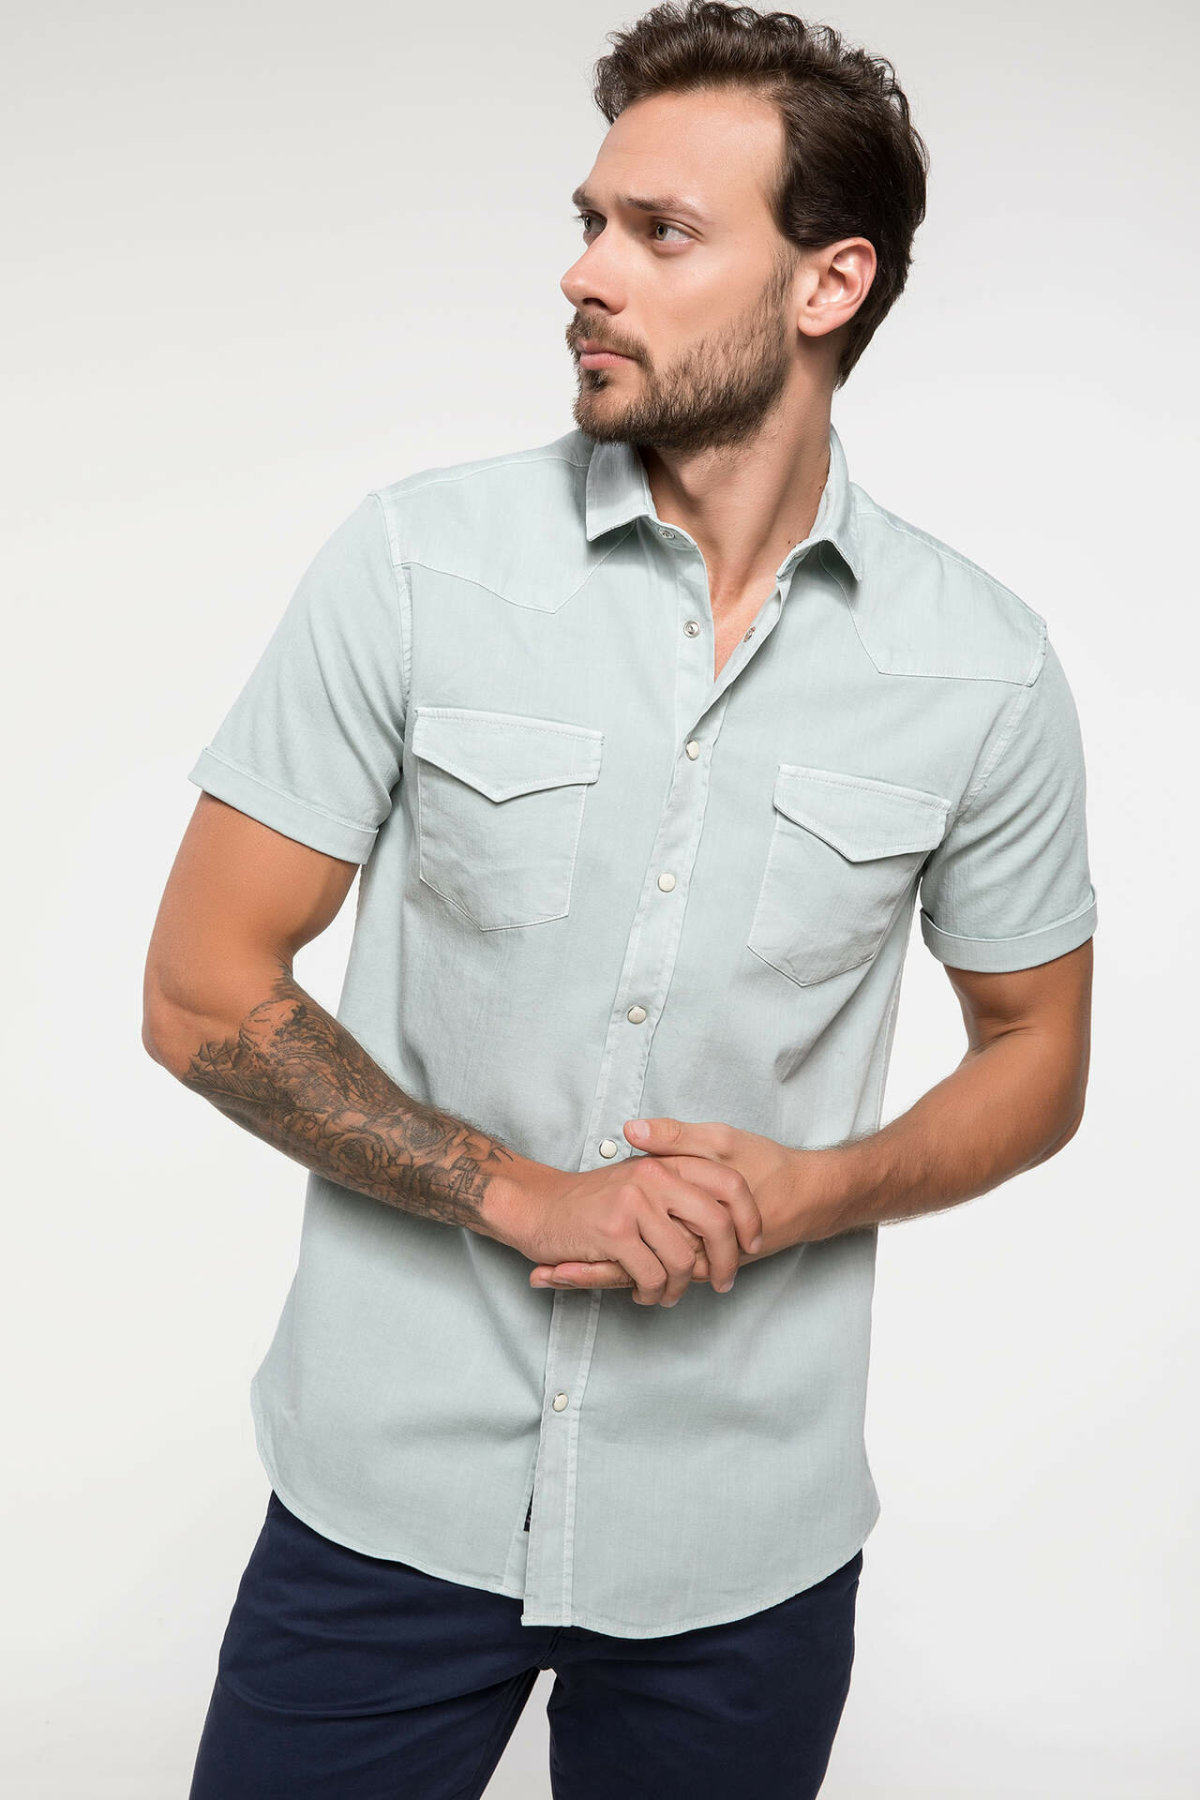 DeFacto Men Solid Pocket Shirts Short Sleeve Simple Shirts Men Casual Lapel Collar Cotton Shirt - I9636AZ18SM